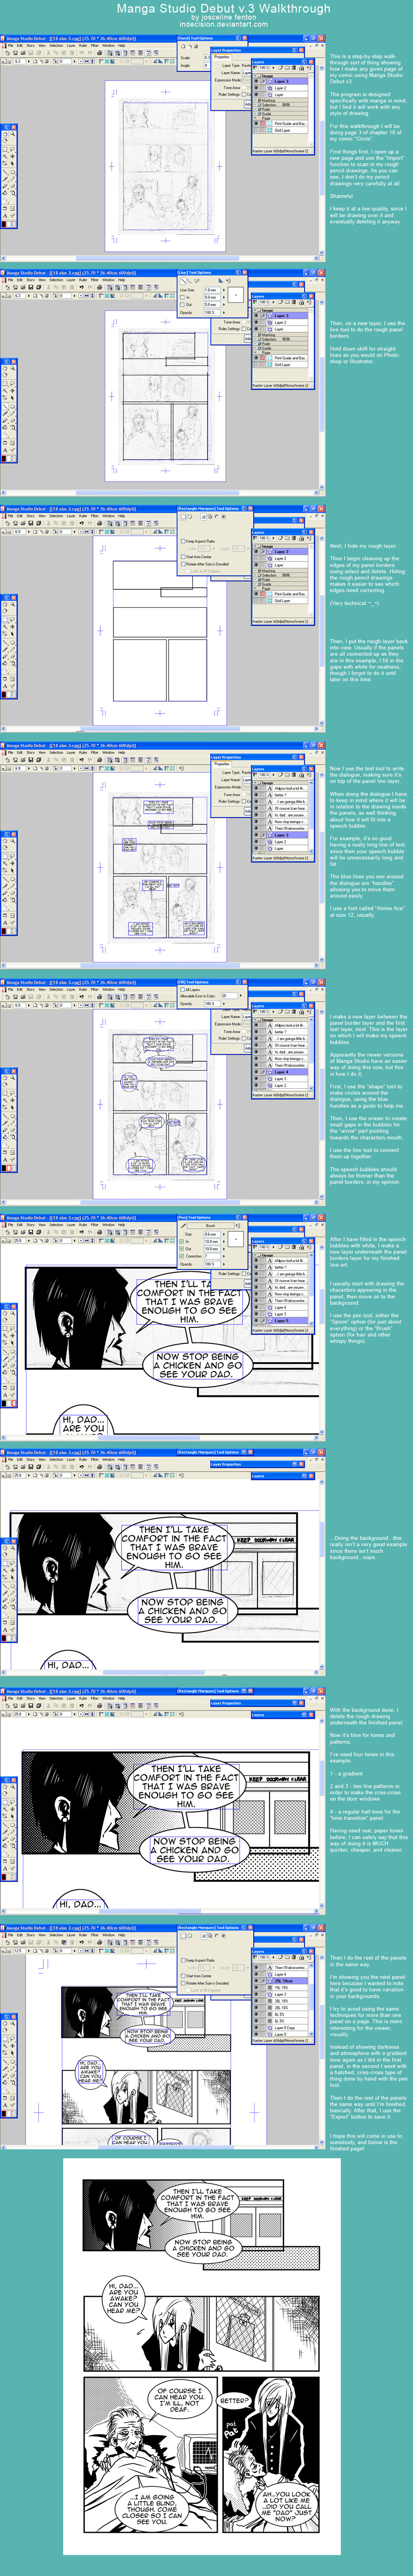 Manga Studio Walkthrough by mildtarantula